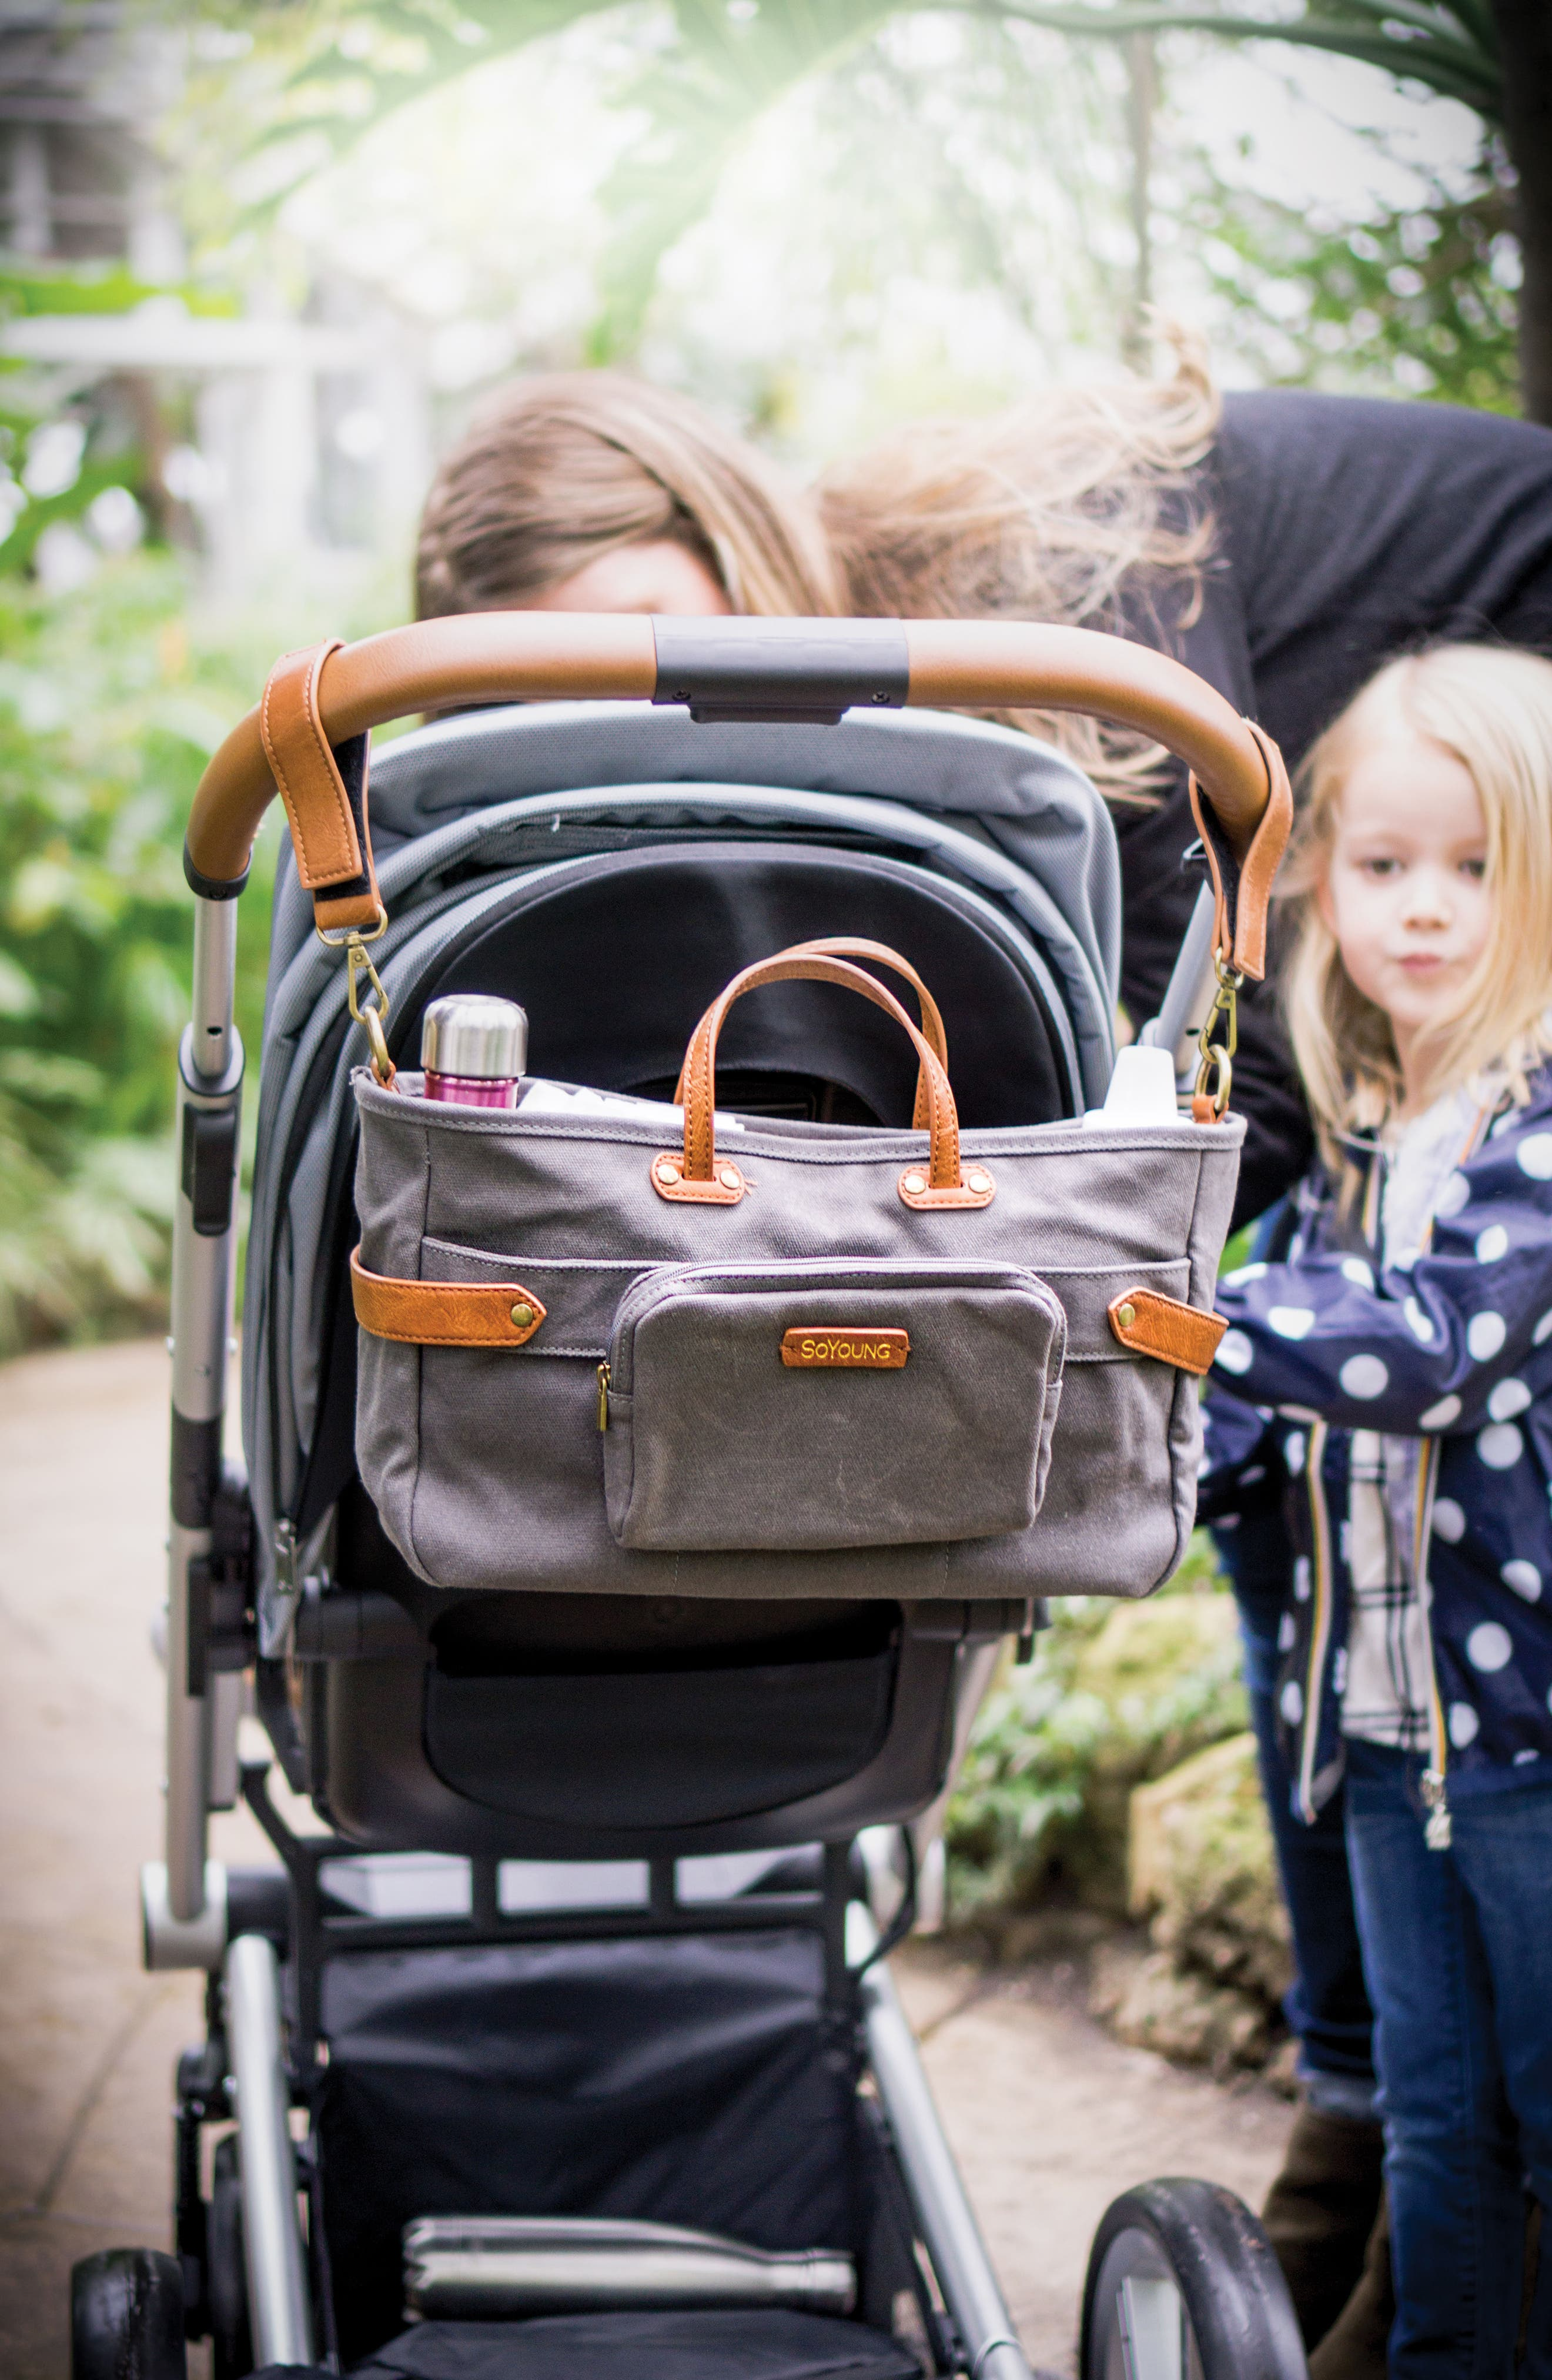 Alternate Image 4  - SoYoung Andi 3-in-1 Stroller Organizer